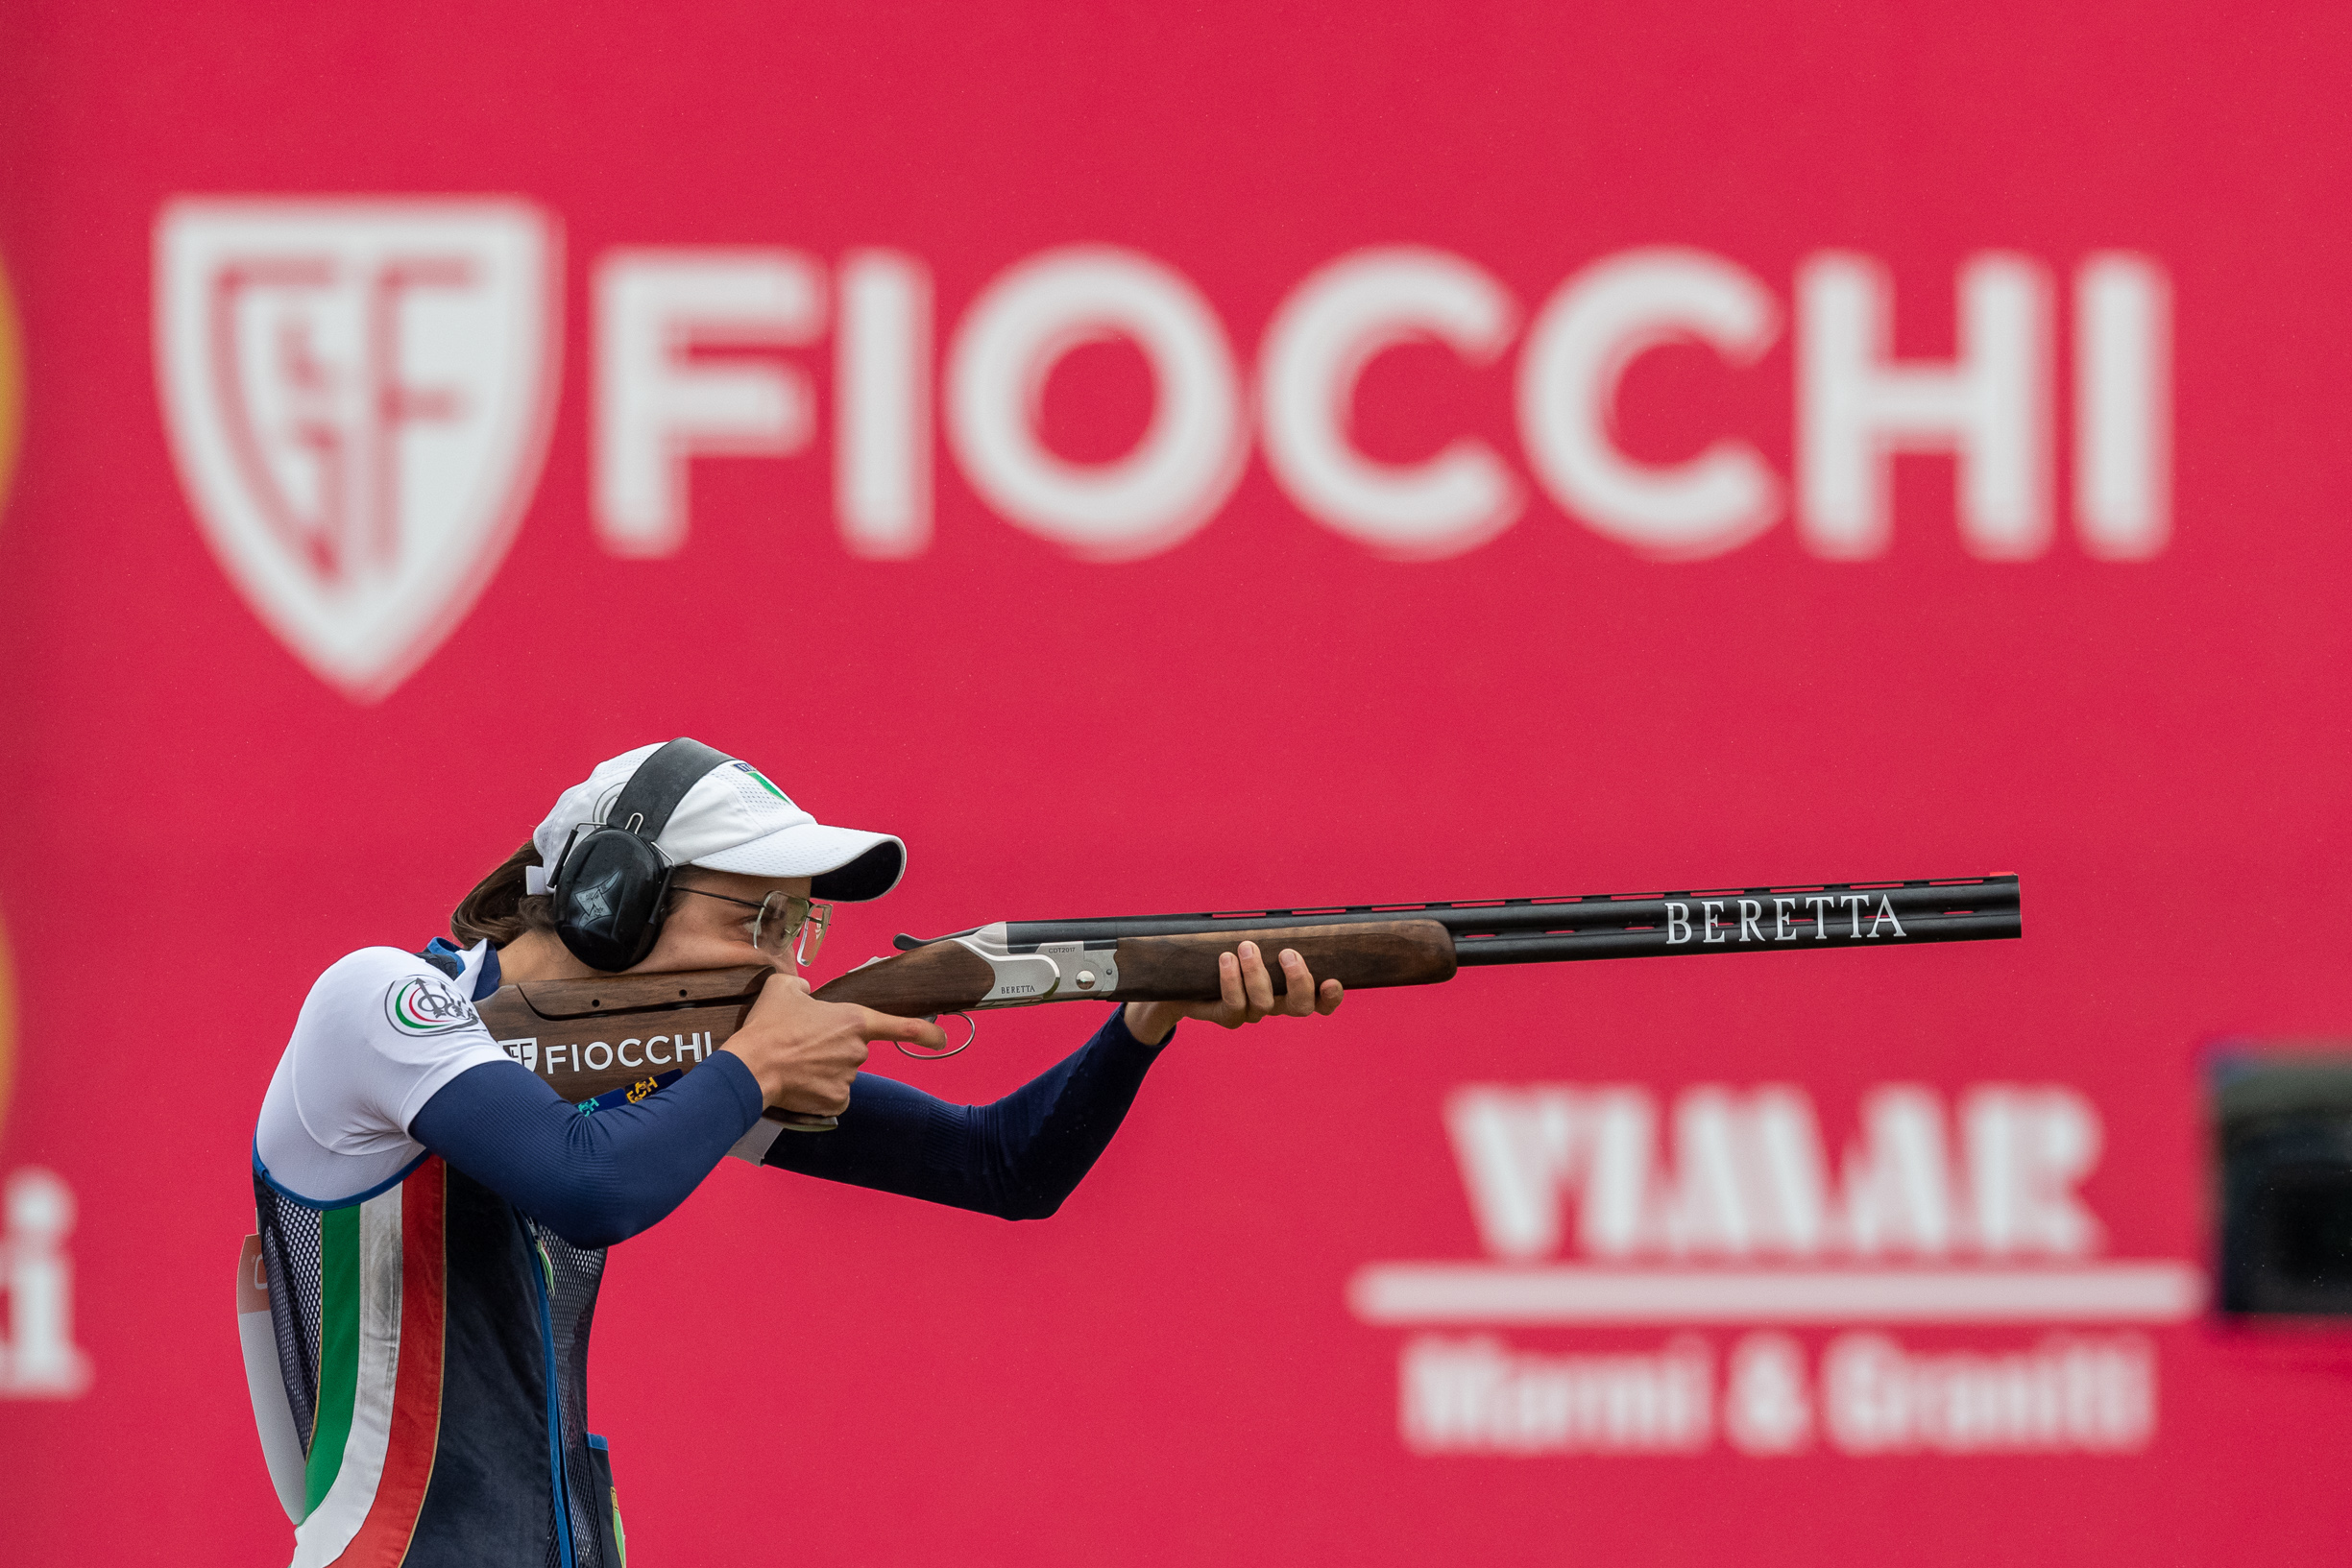 TOKYO 2020: FIOCCHI PRESENTS ITS OLYMPIC TEAM